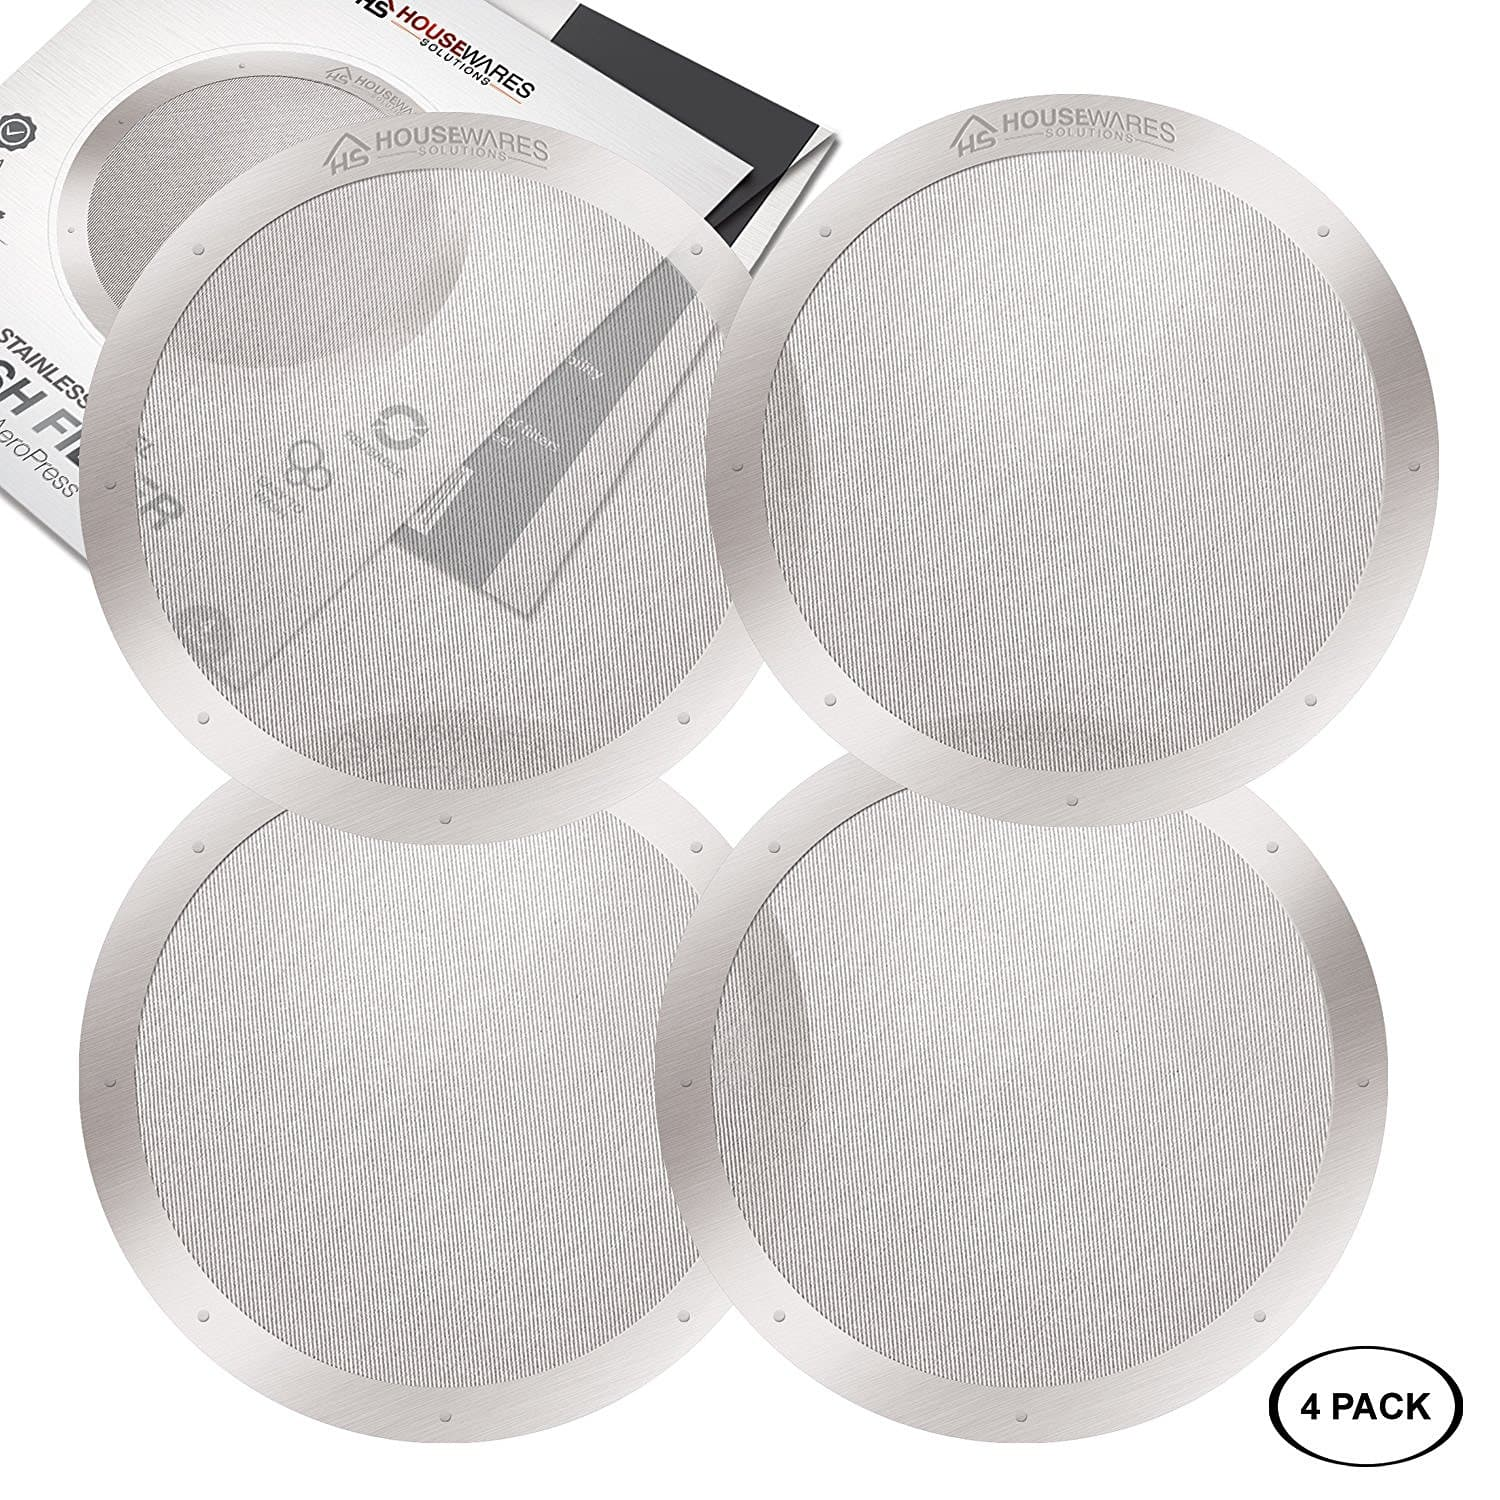 4-Pack Reusable Stainless Steel Filters for AeroPress - $1 after coupon -  Amazon free prime shipping